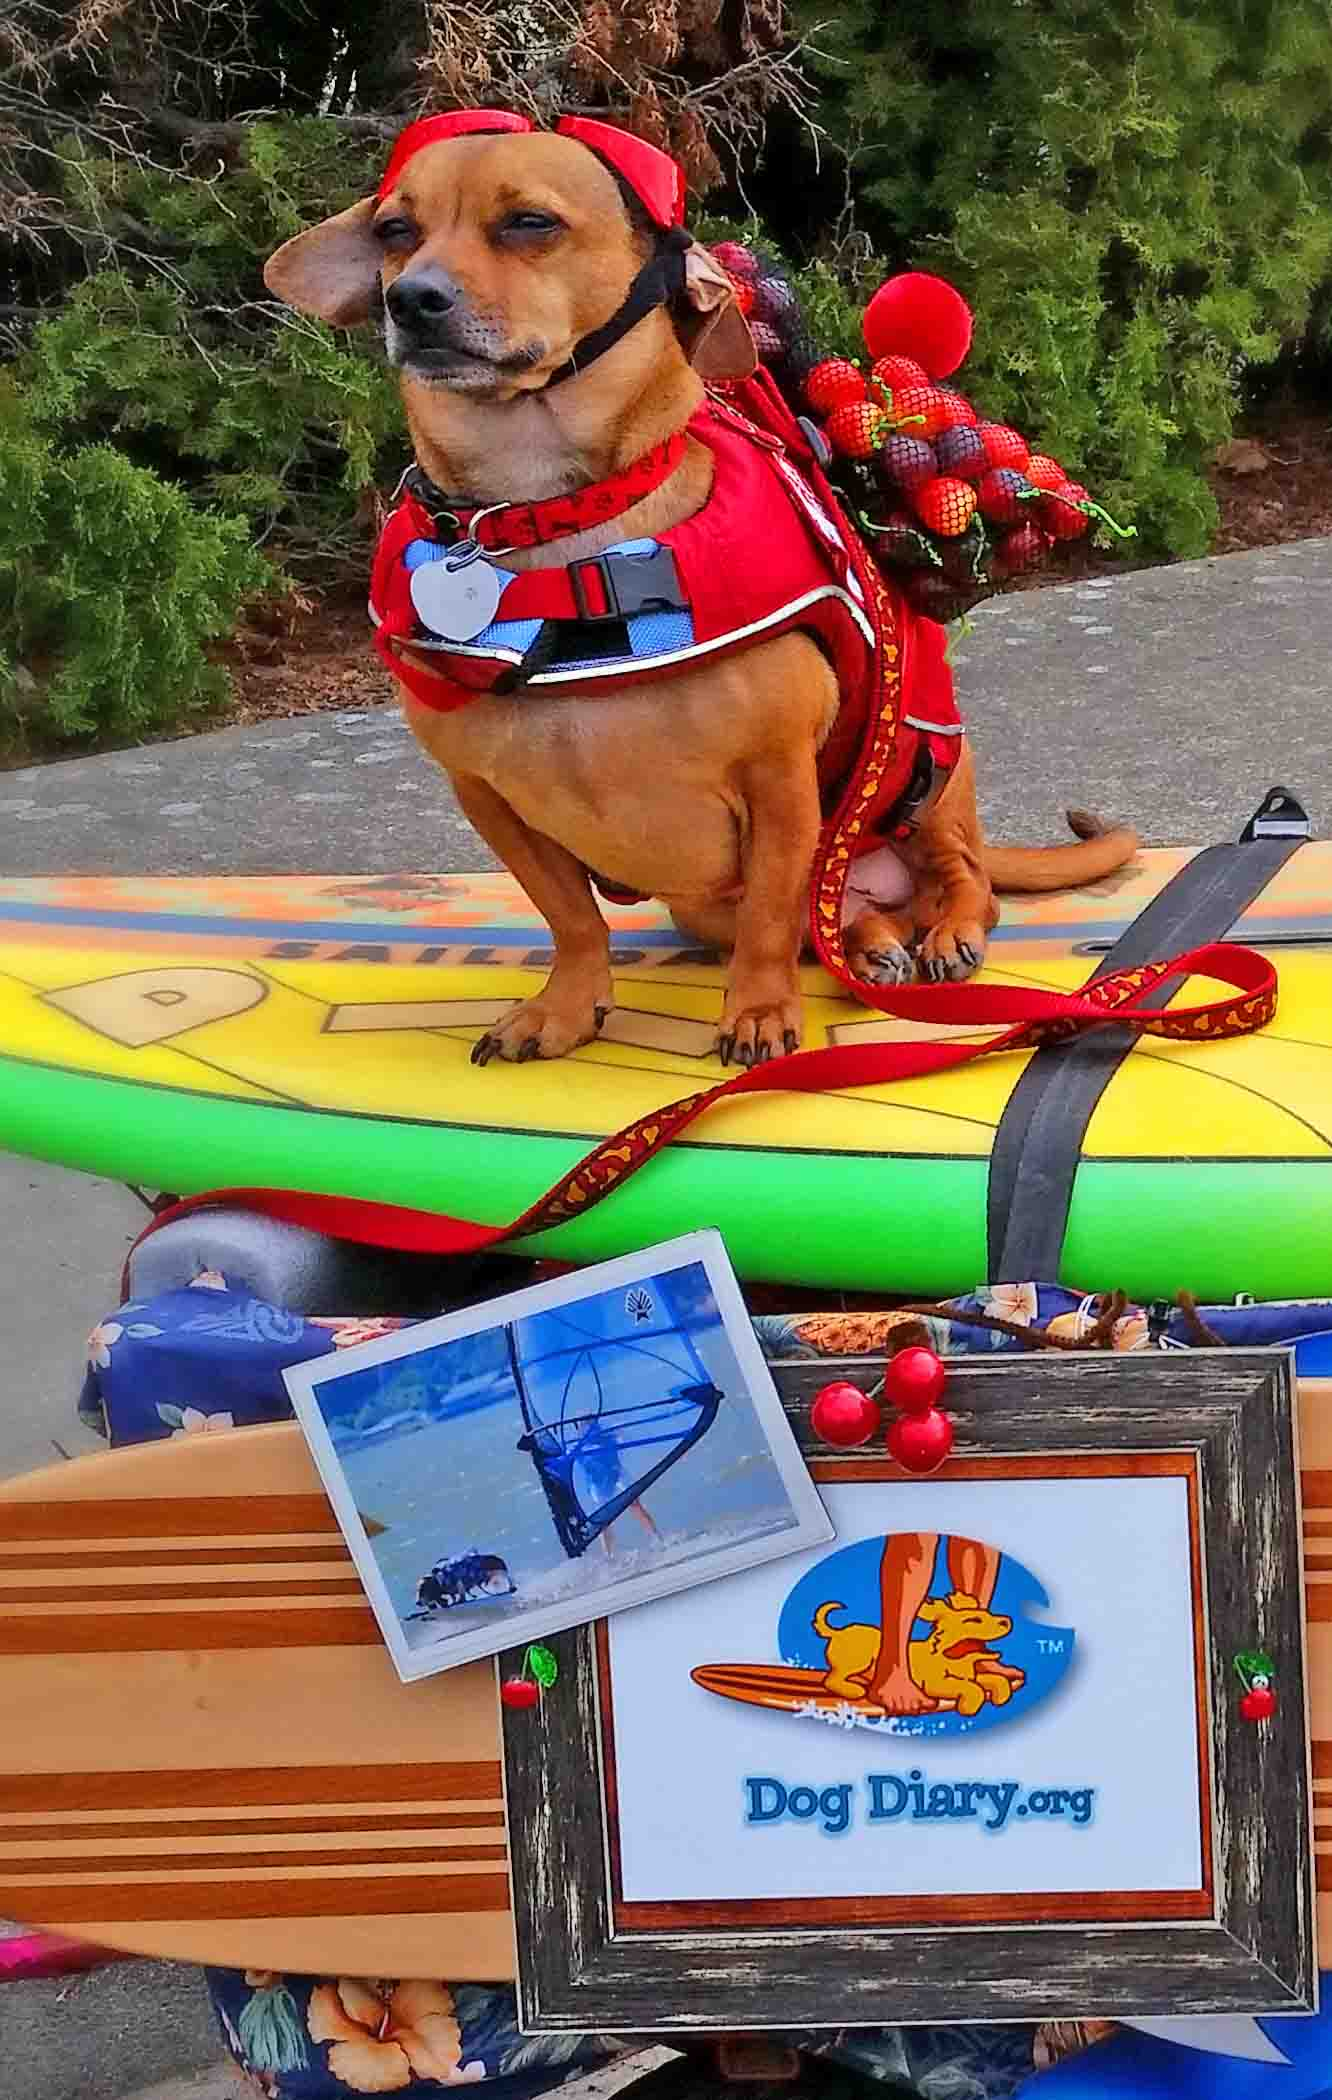 Doodle here, on my land board surfboard rig,for parades and dog walks. Just like Howdy, Elvis and Dude did.      Photo: (c) Barb Ayers, DogDiary.org